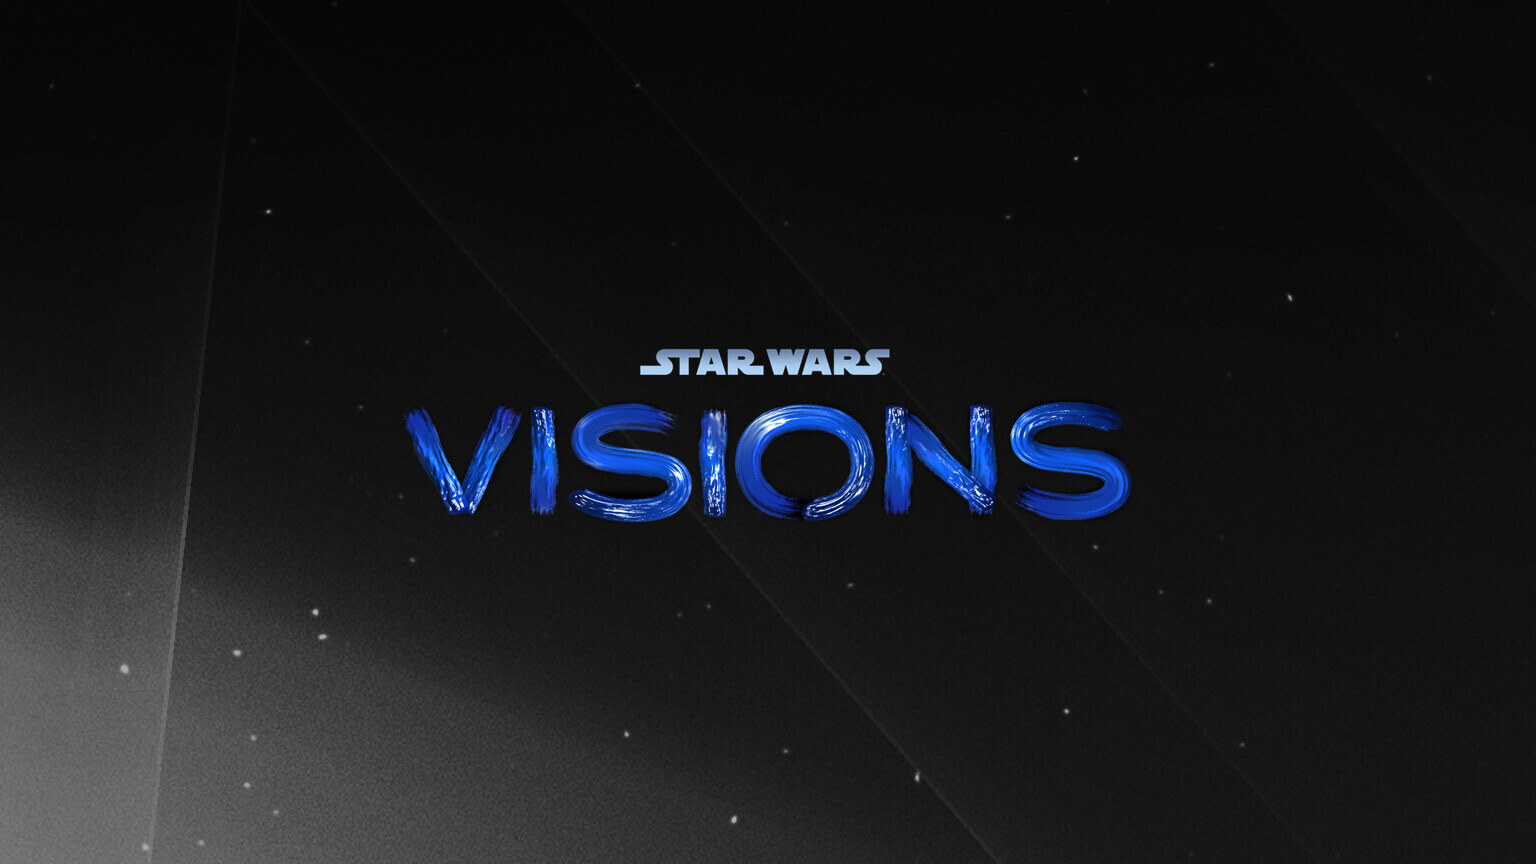 Star Wars: Visions: Anime series links Star Wars with Japan